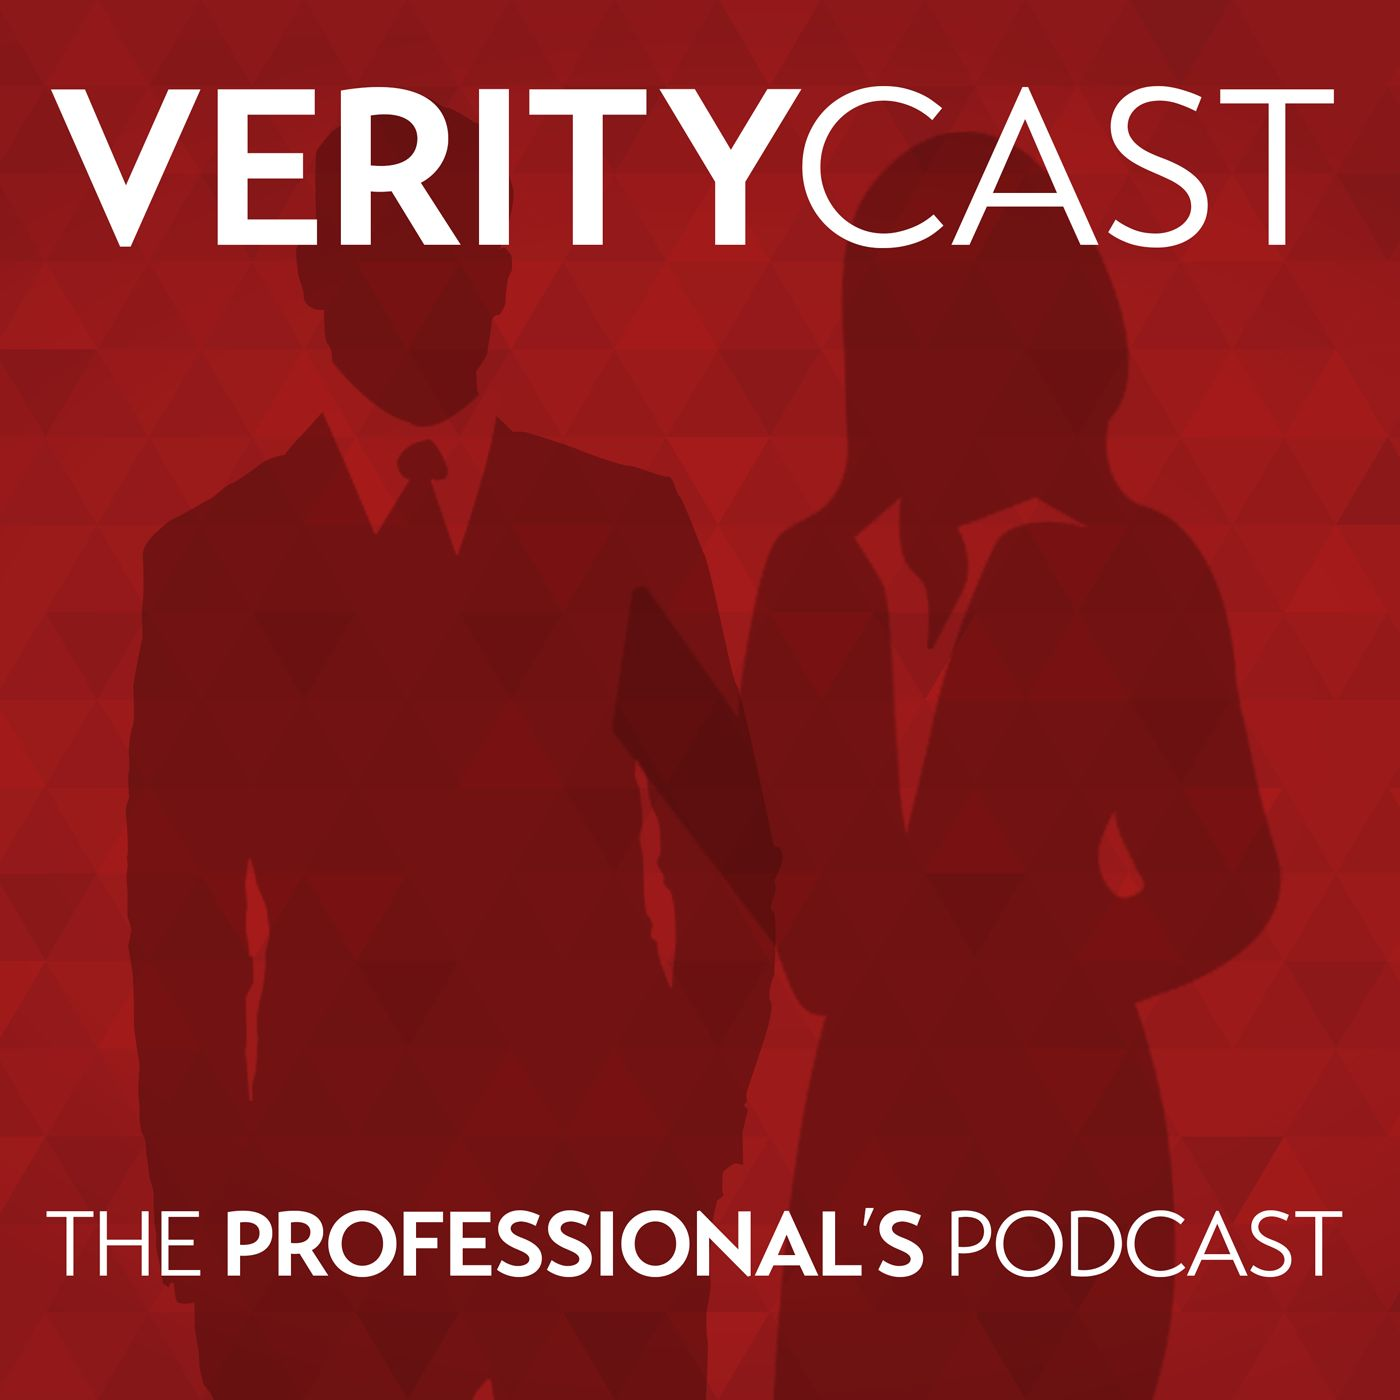 VerityCast | The Professional's Podcast